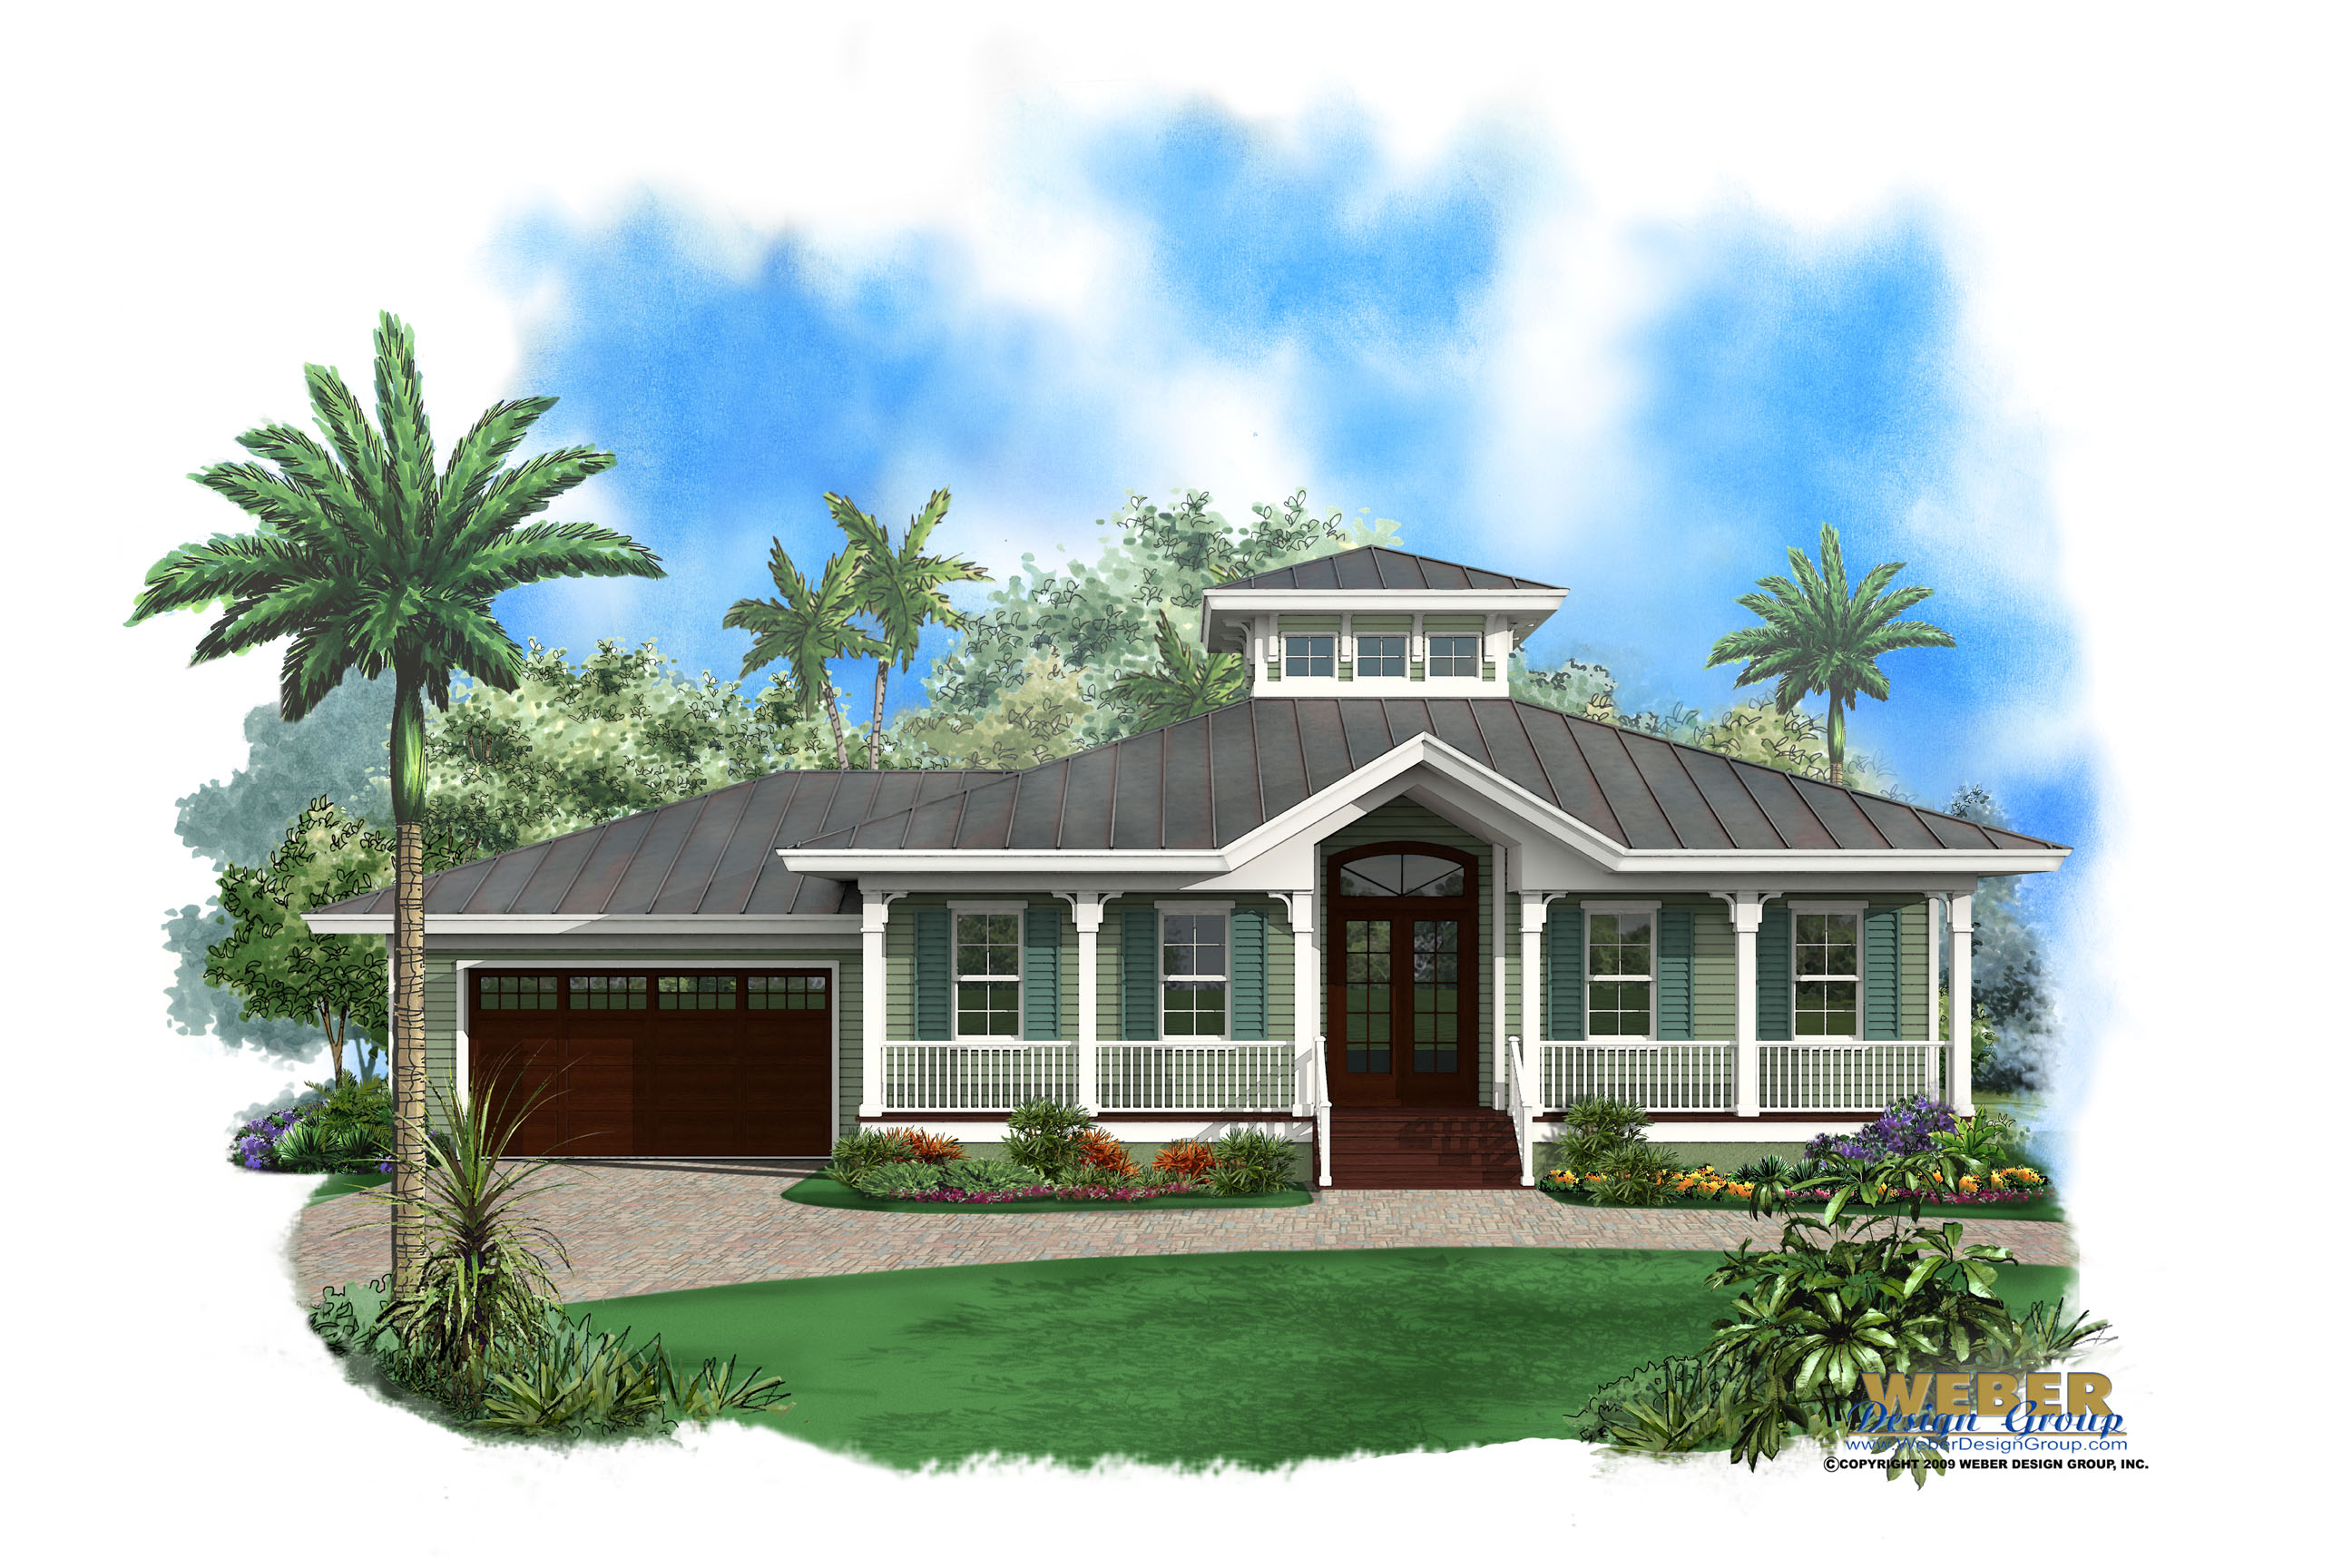 Olde florida house plan ambergris cay house plan weber for Group house plans